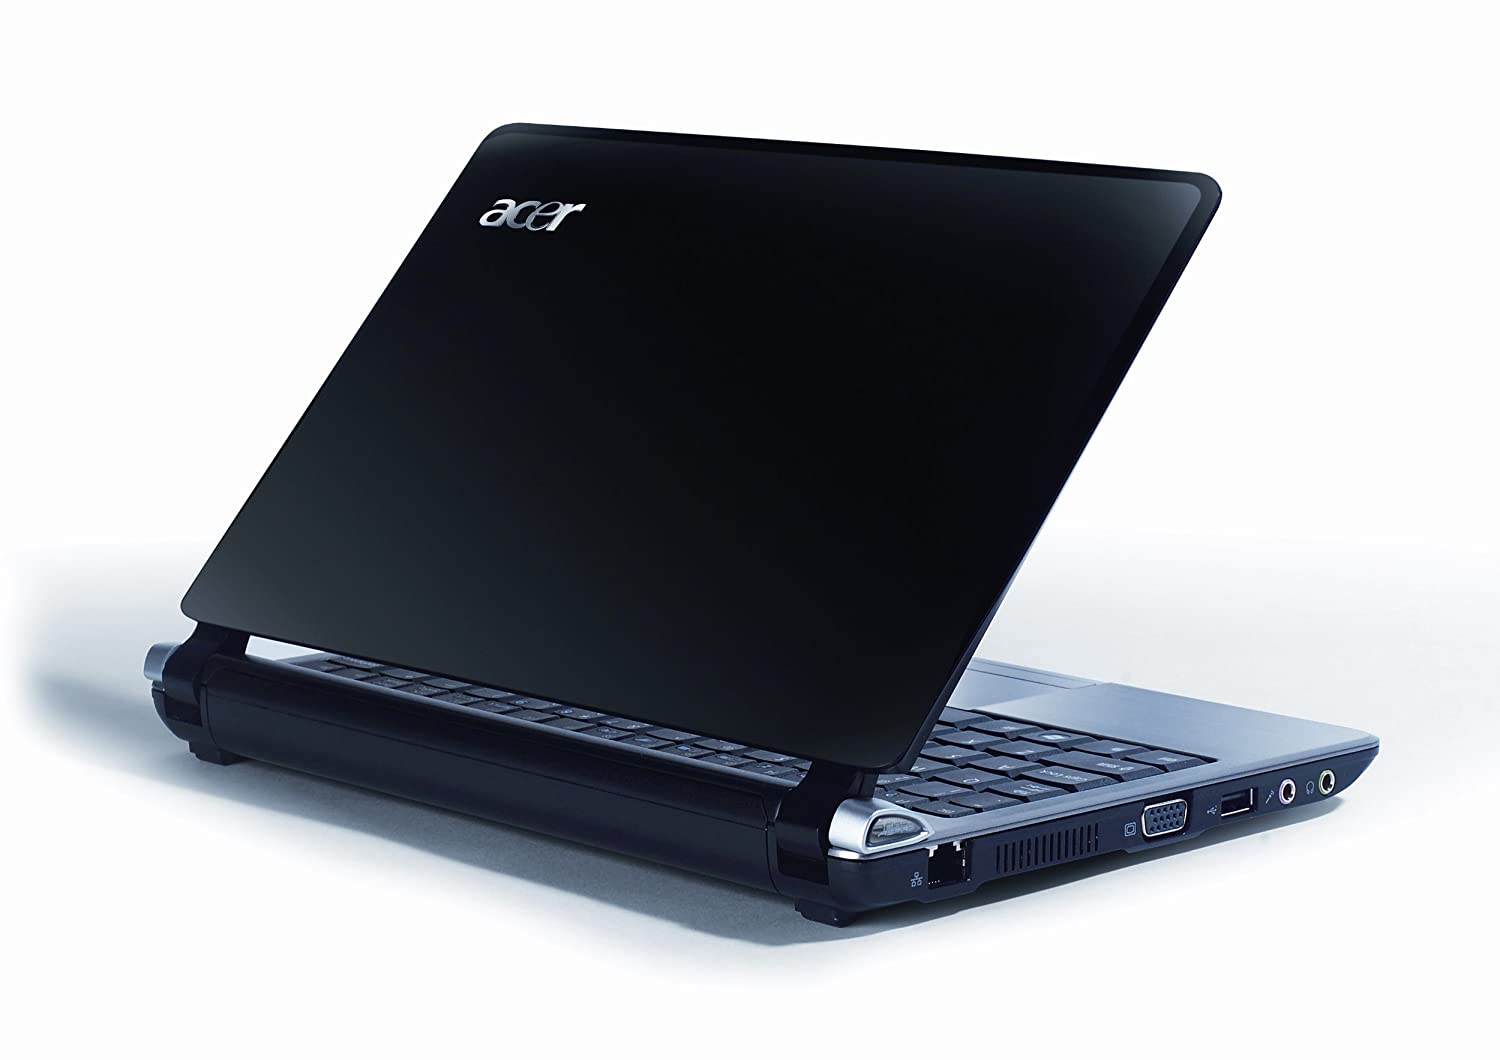 Amazon.com : Acer AOD250-1613 10.1-Inch Black Android/XP Netbook - Up to 9 Hours of Battery Life : Netbook Computers : Computers & Accessories